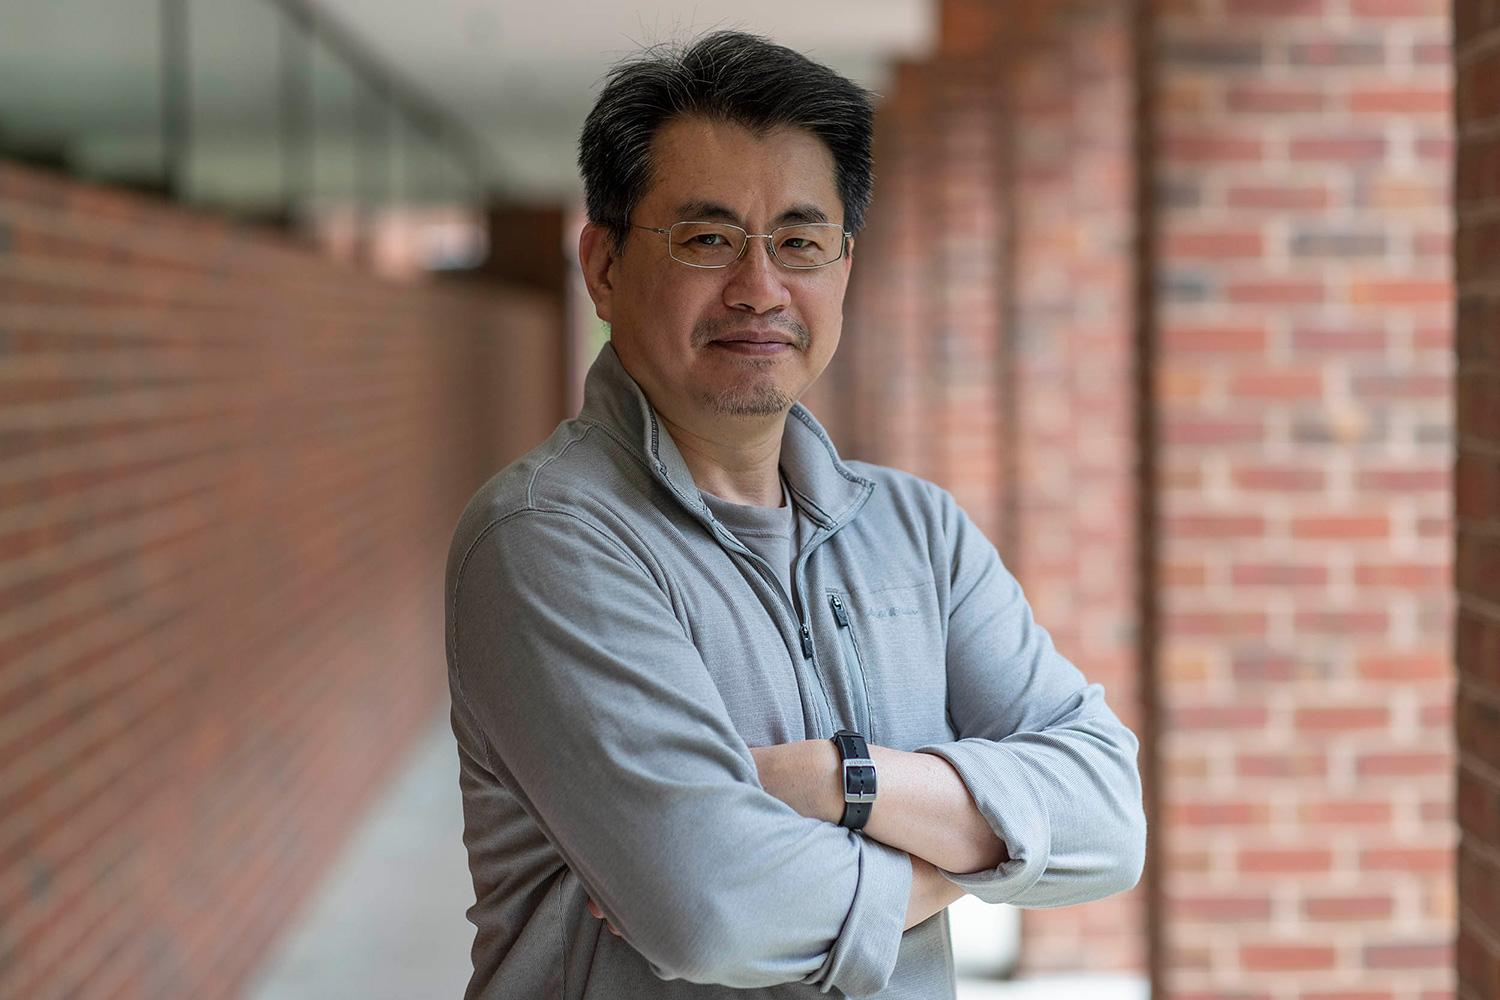 Curry School professor Robert Tai is seeking ways to engage and sustain young students' early interest in science.